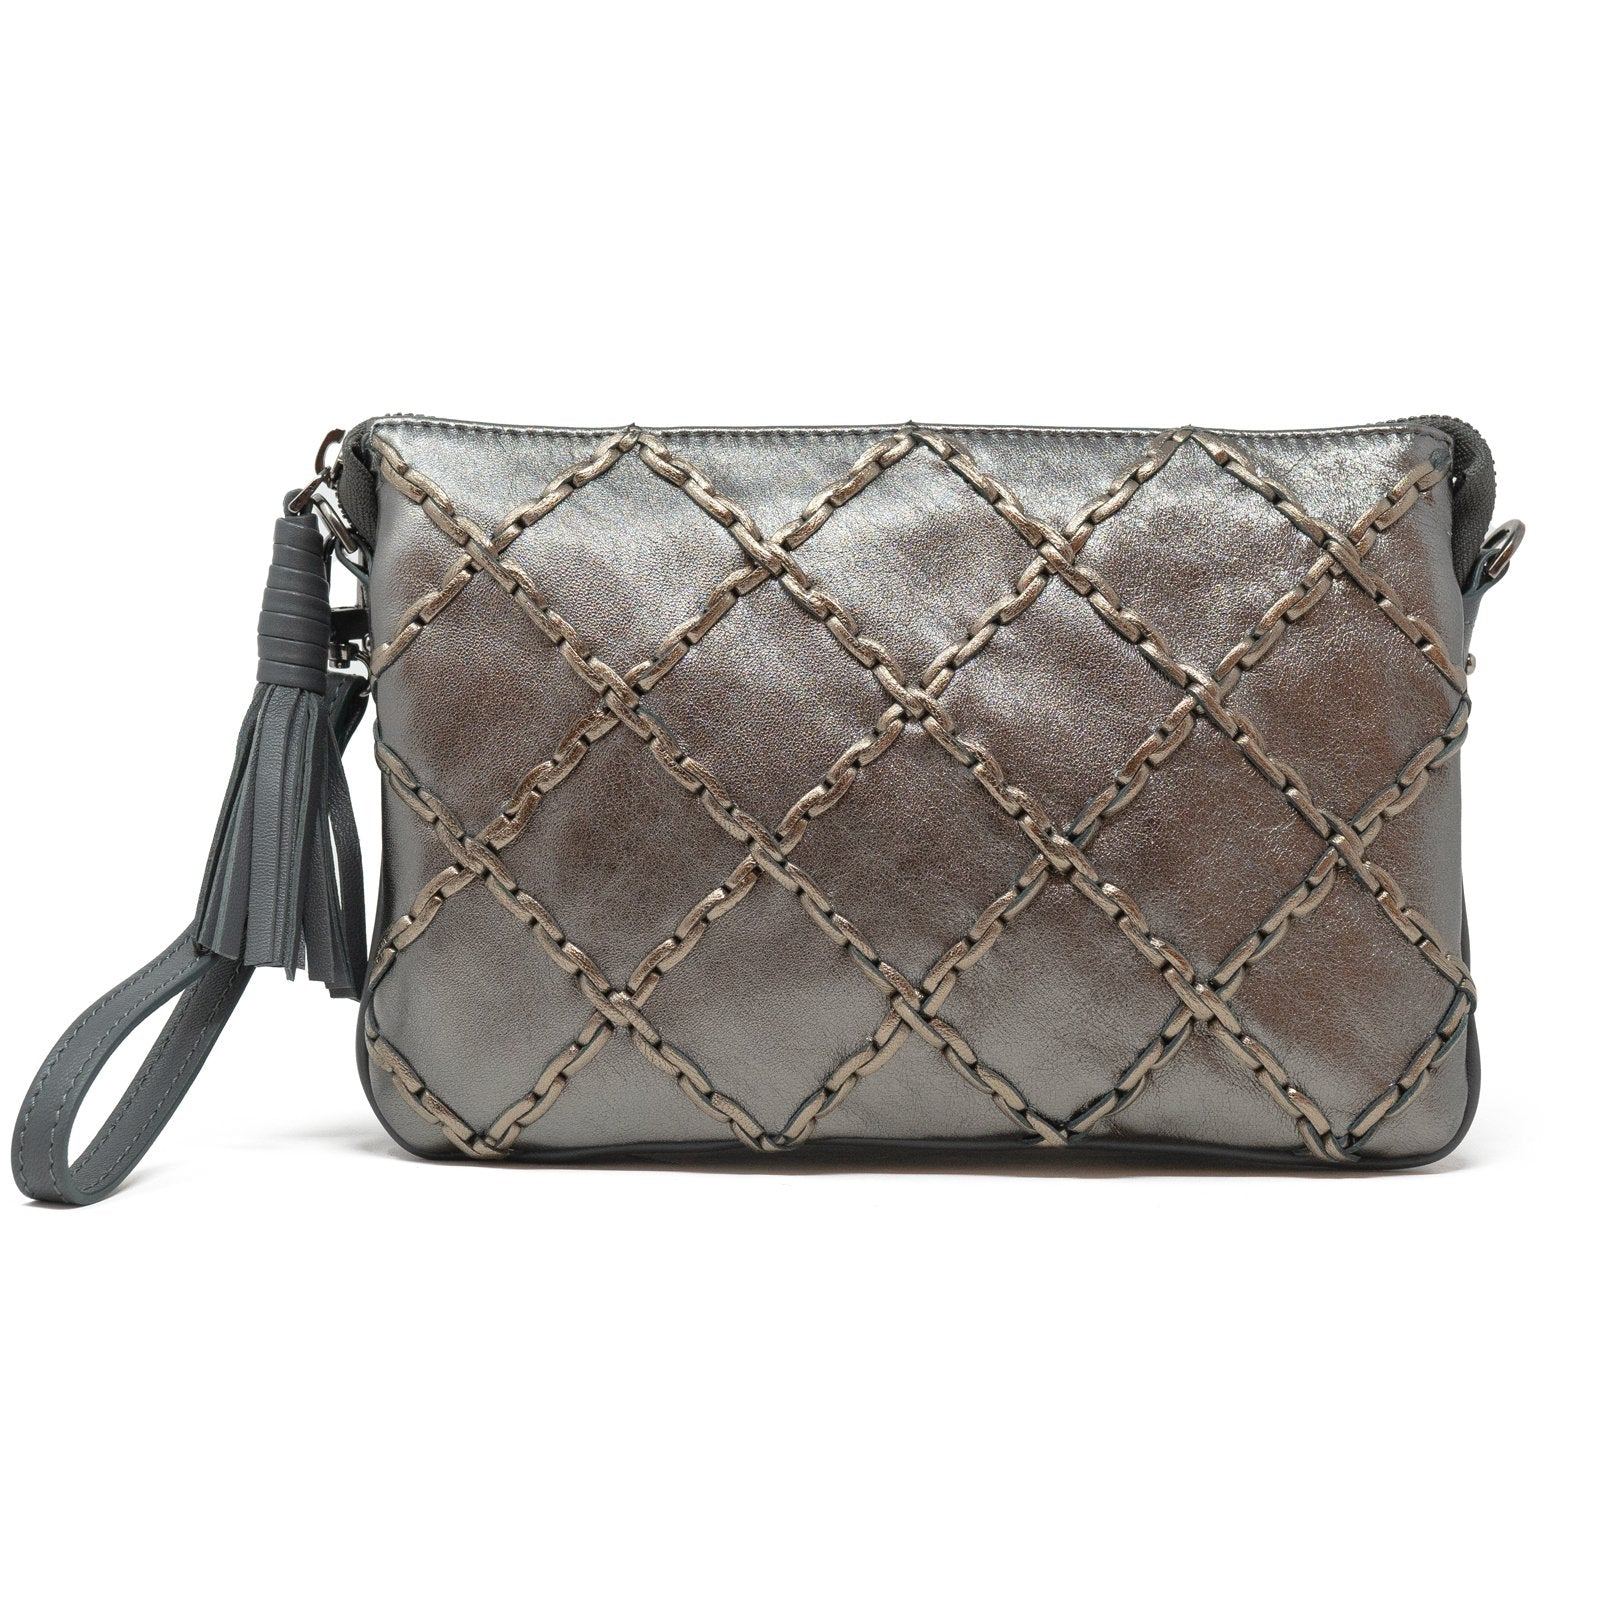 Woman Leather Clutch Grillage - Jennifer Tattanelli